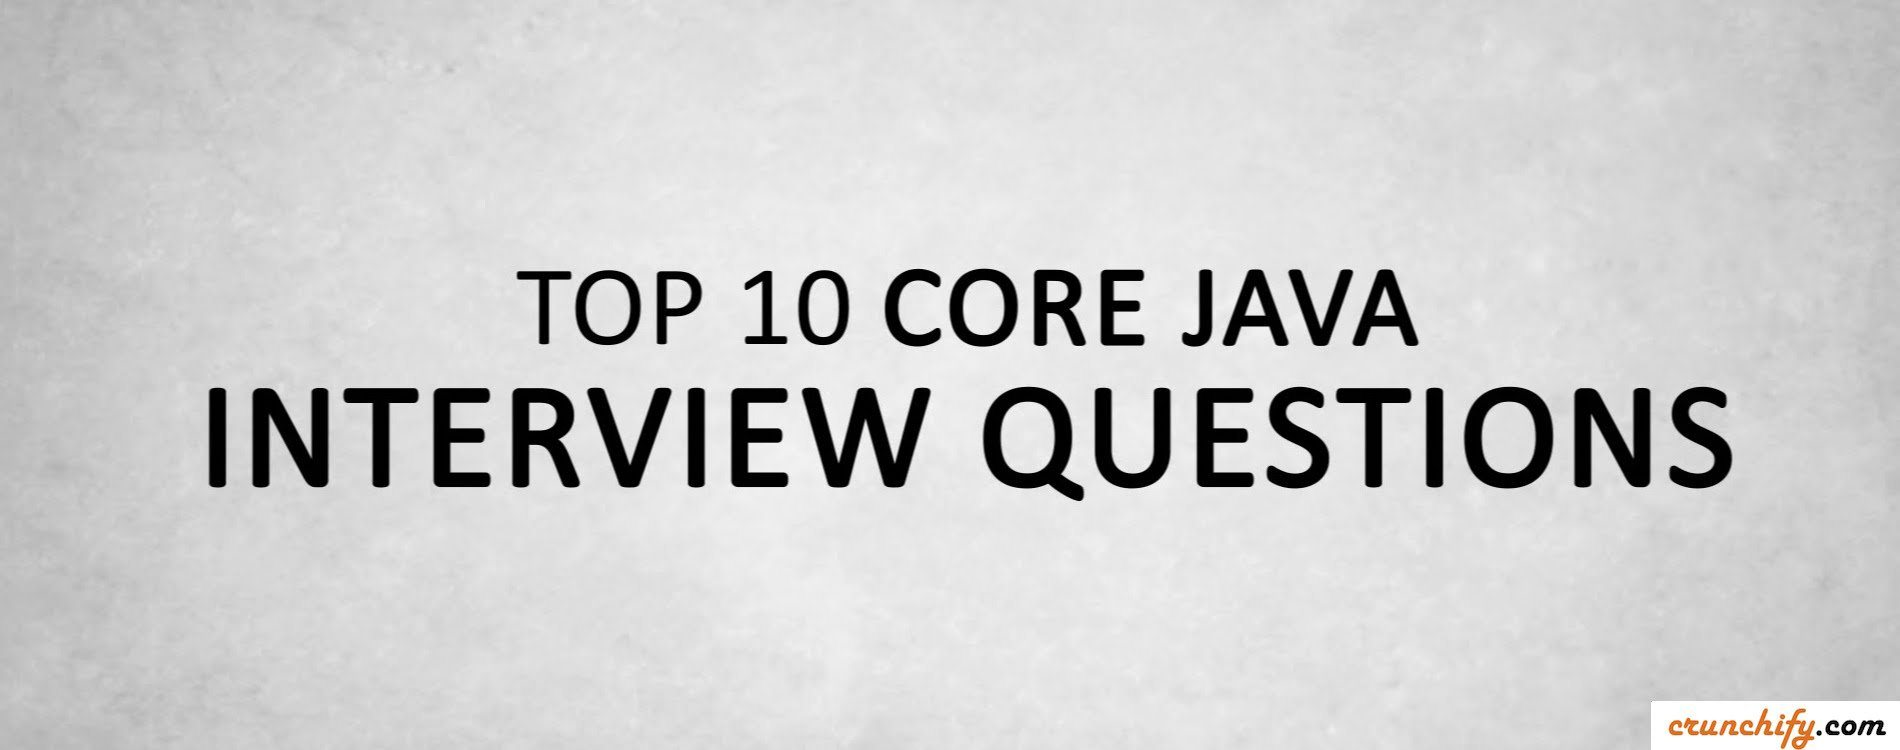 top 10 java interview questions answers must before top 10 java interview questions by crunchify